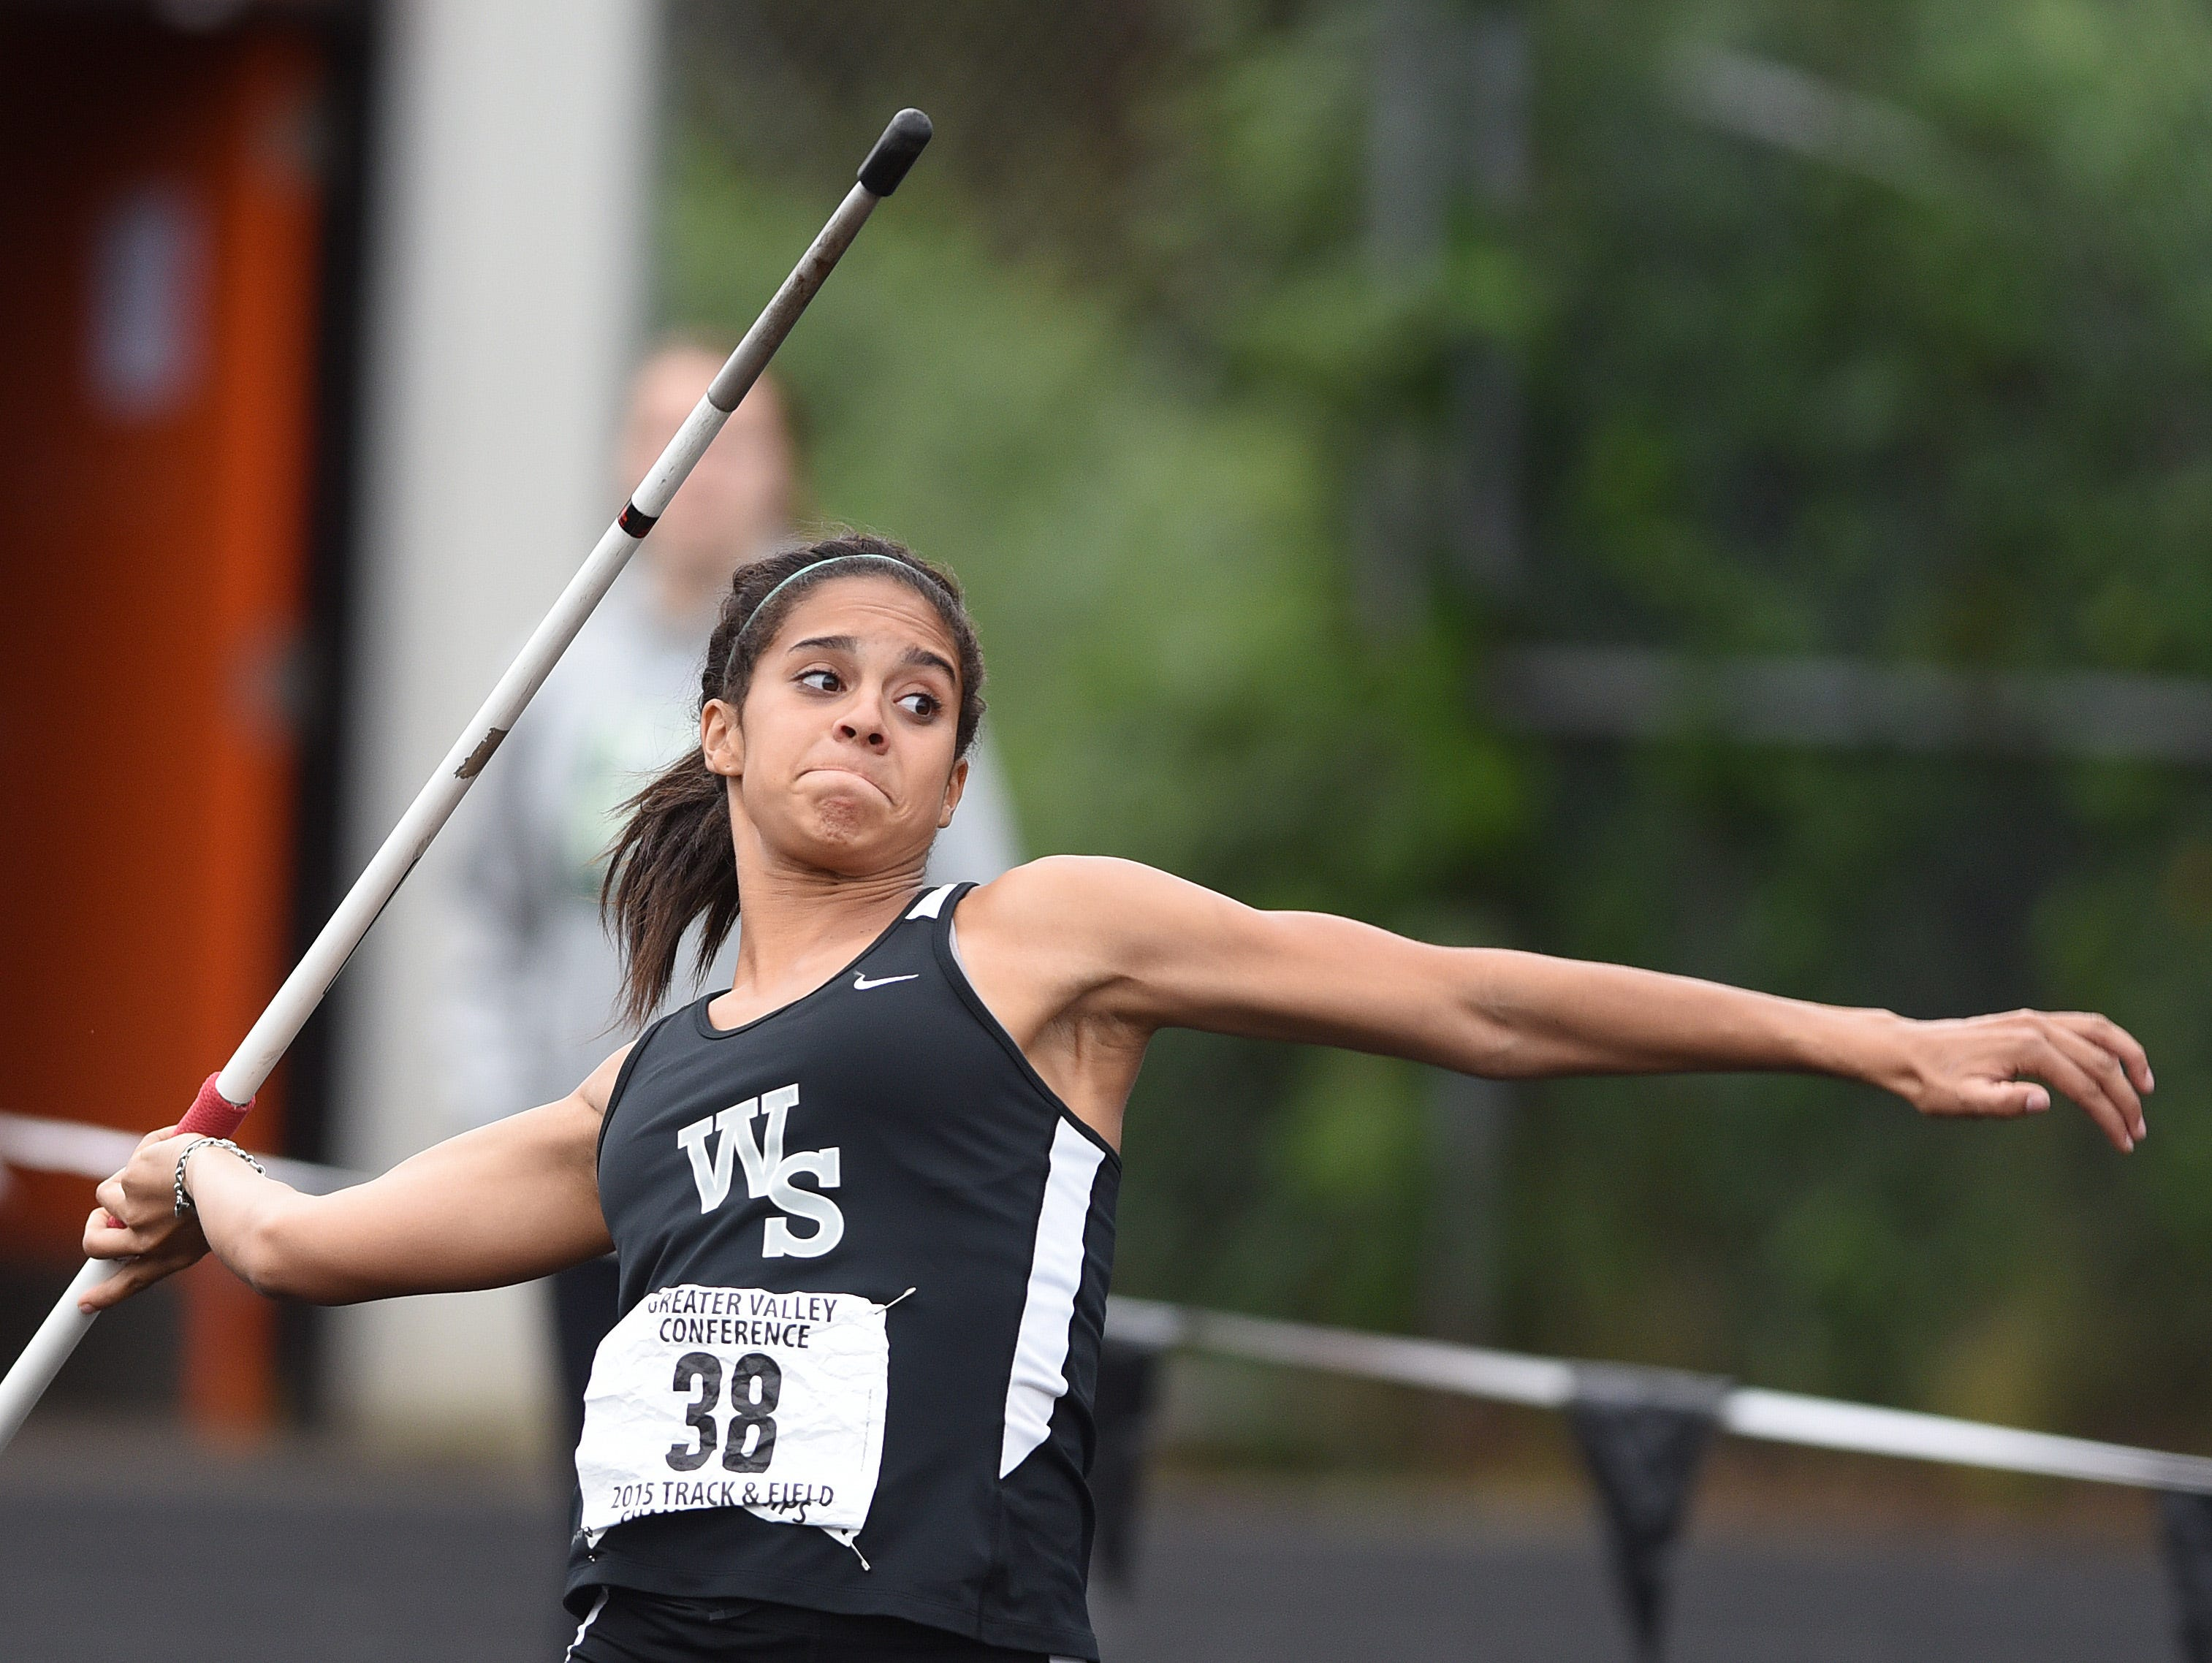 West Salem's Keira McCarrell was the Greater Valley Conference champion, 6A state runner-up and national champion in the javelin in 2015.